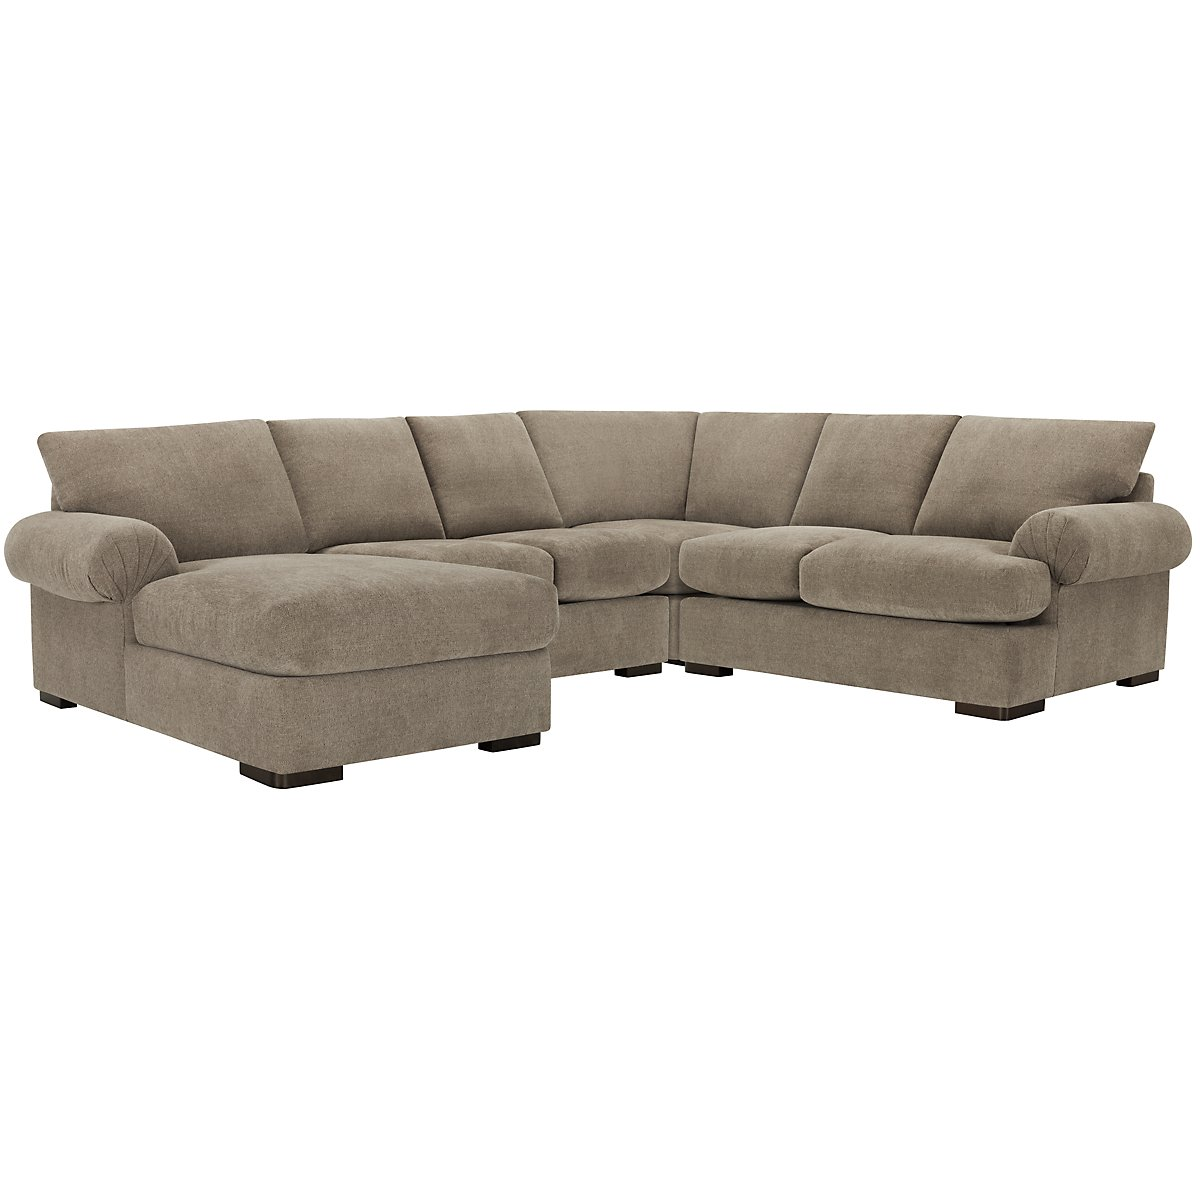 Belair Dark Taupe Fabric Medium Left Chaise Sectional